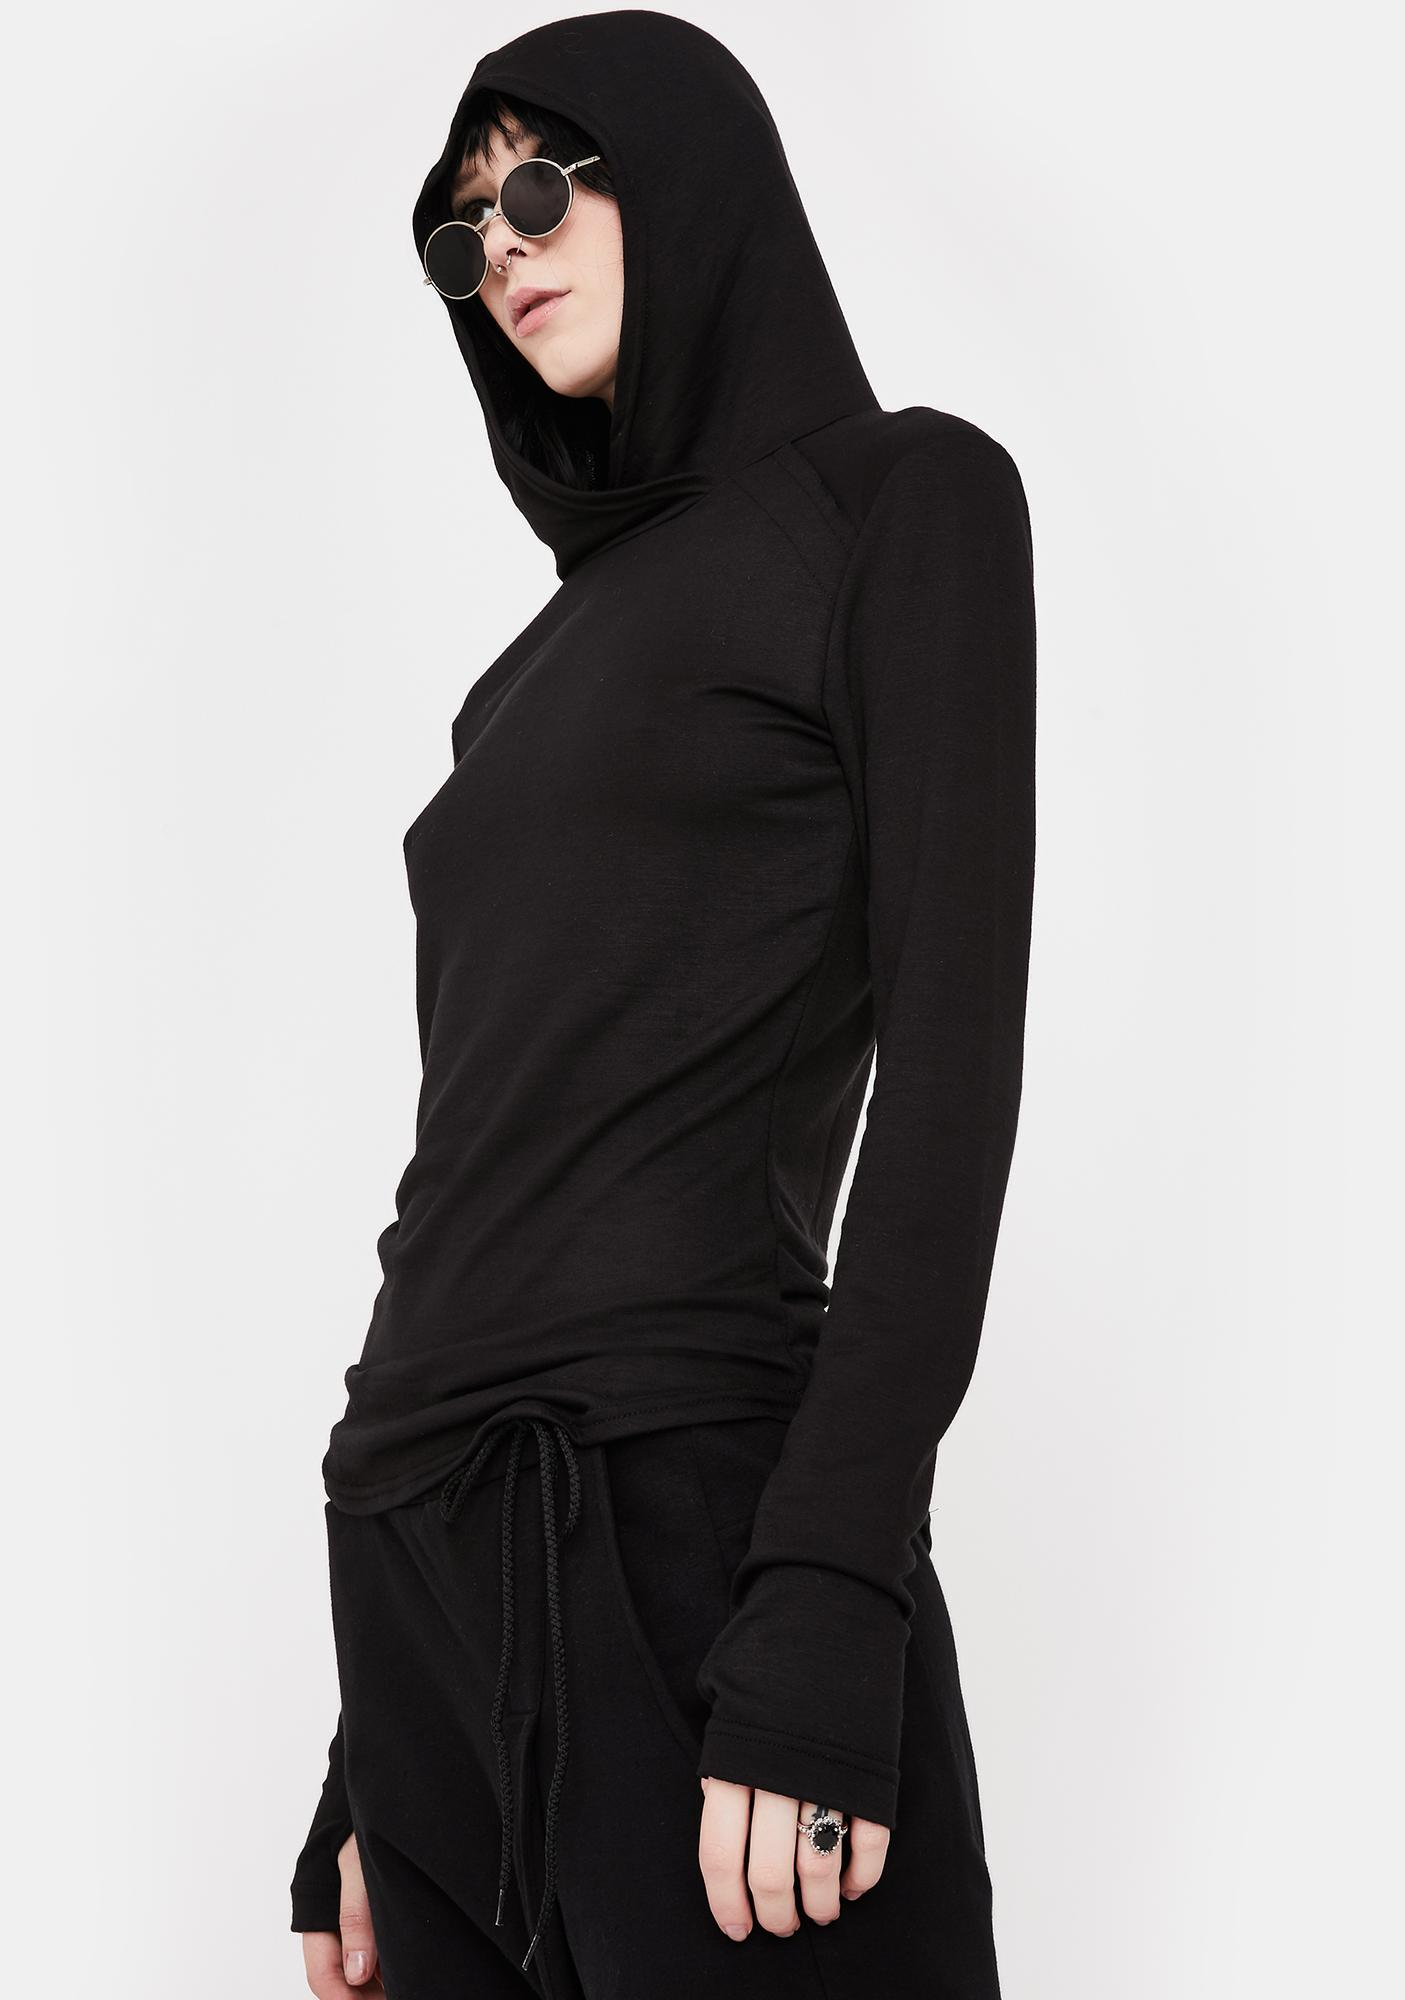 NOCTEX Black Base Hooded Long Sleeve Tee